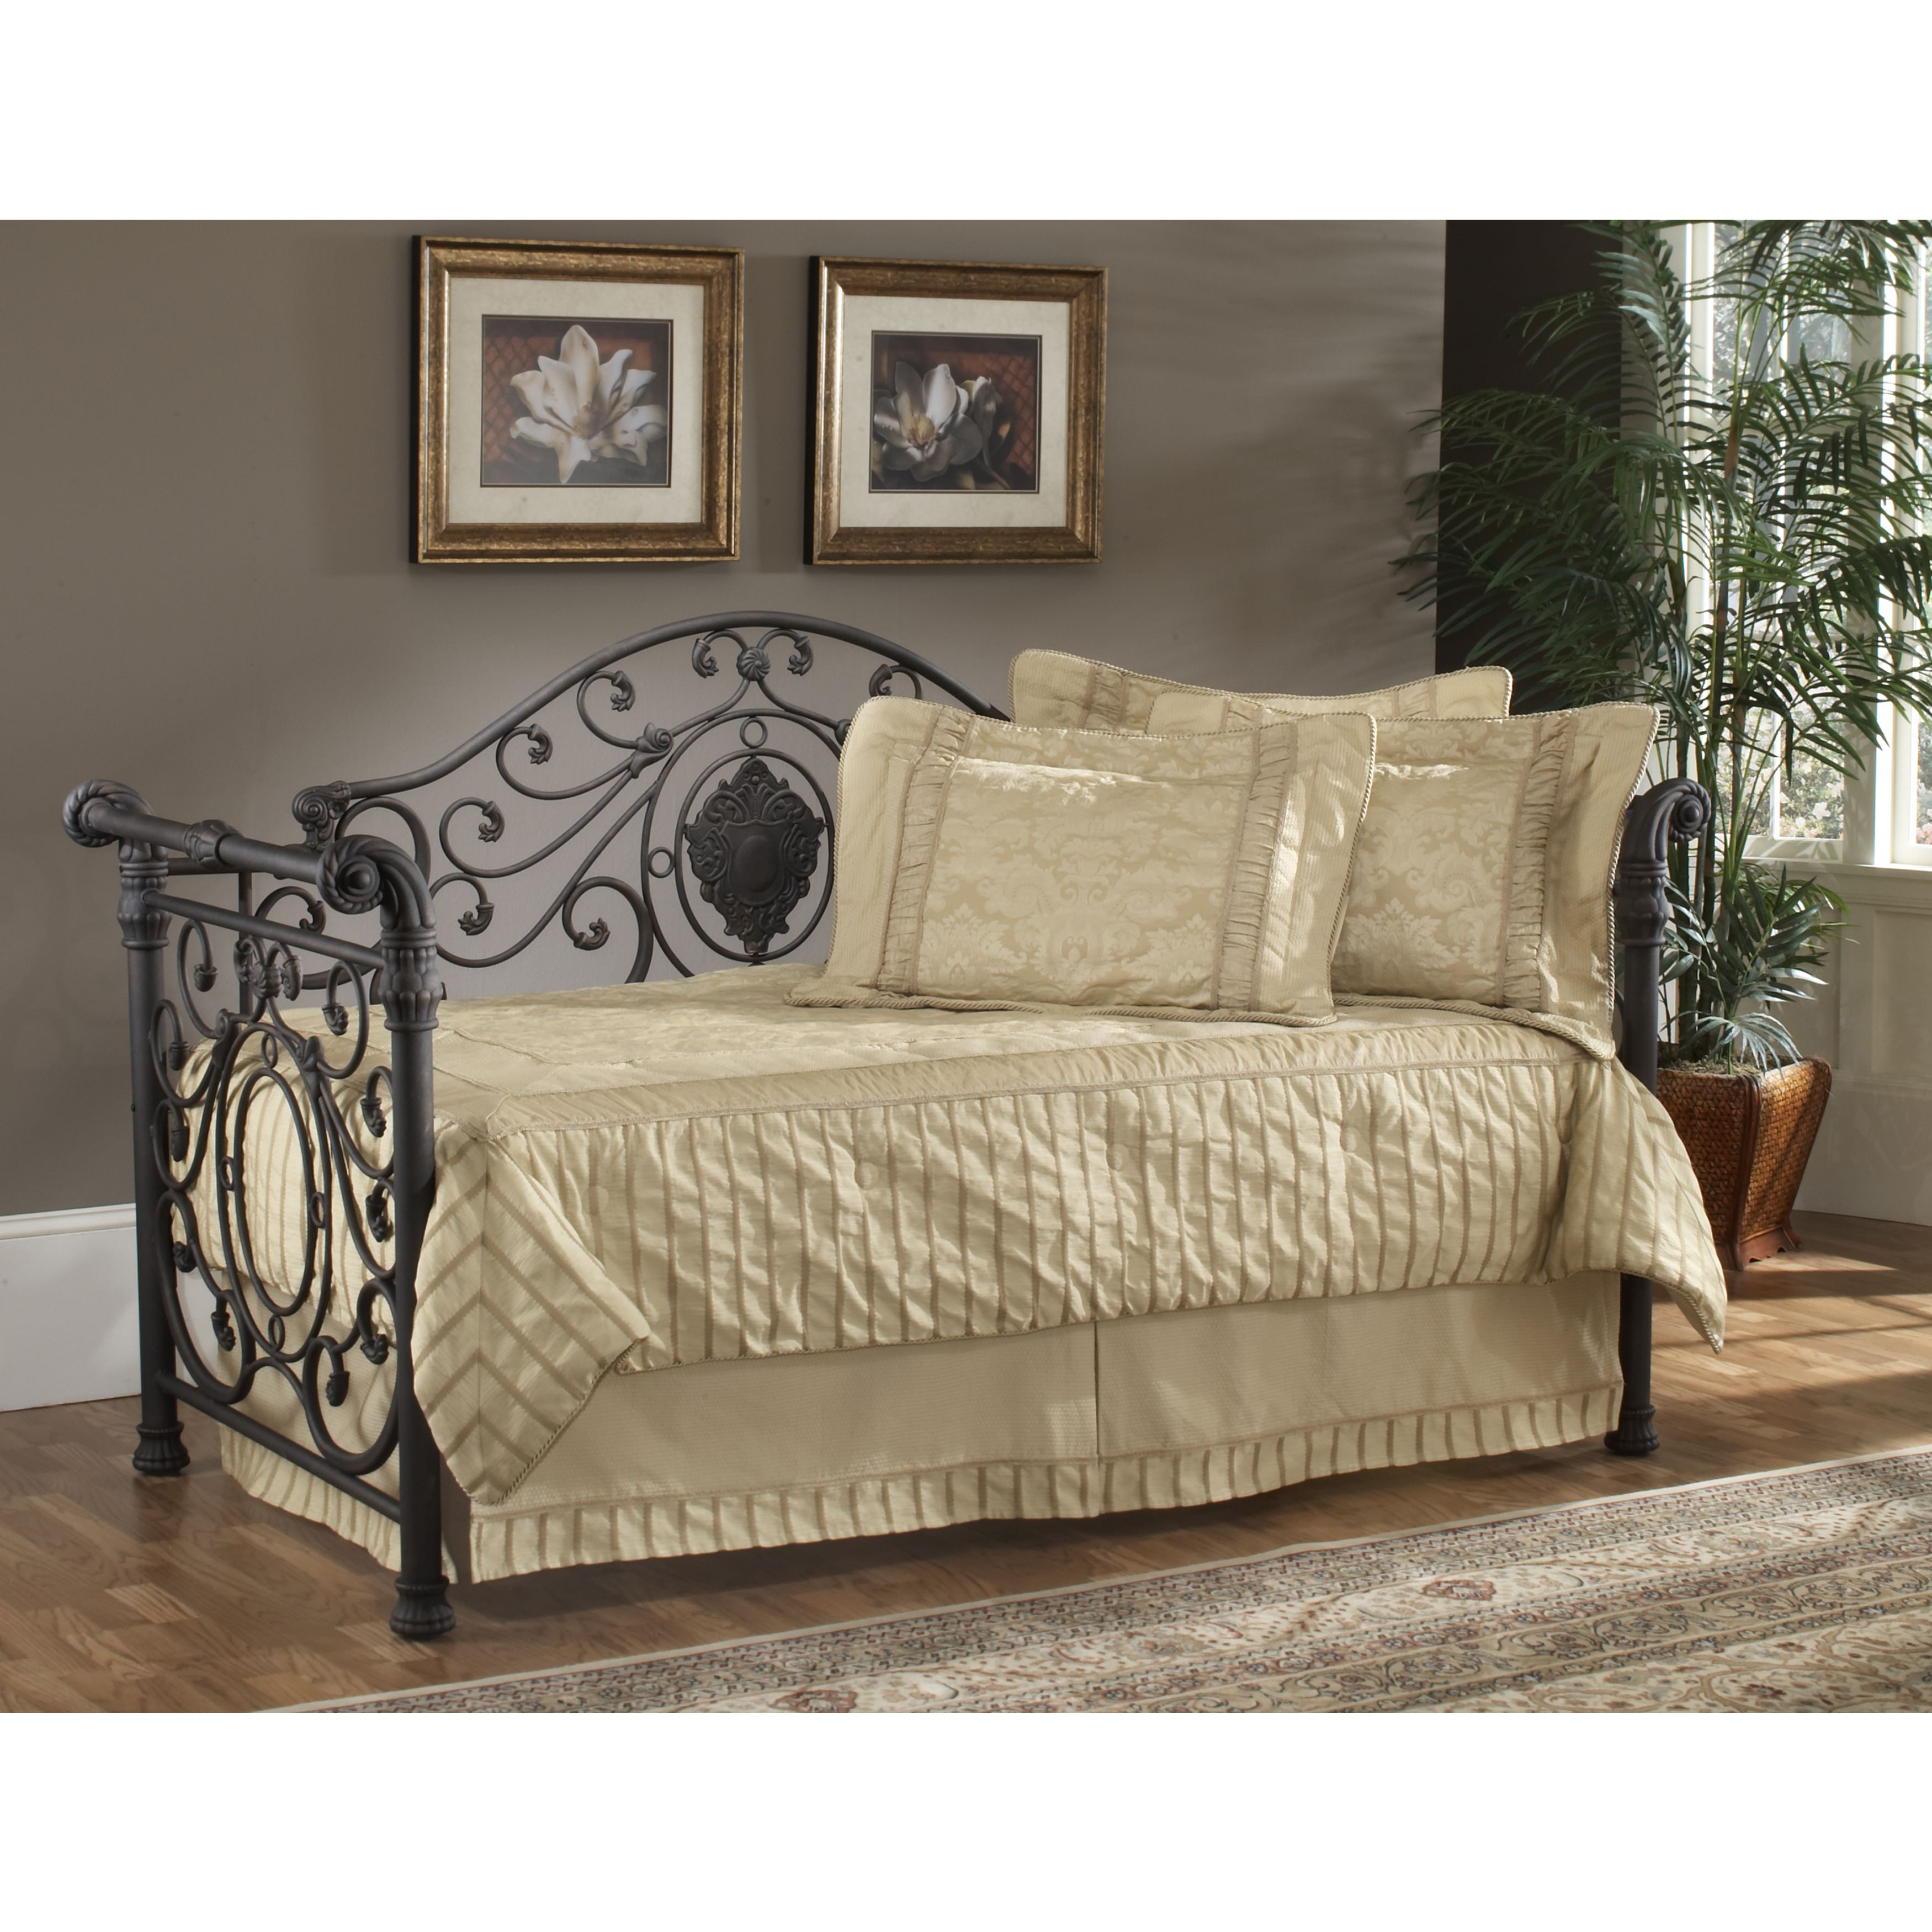 This Victorian Daybed Offers An Old World Style With The